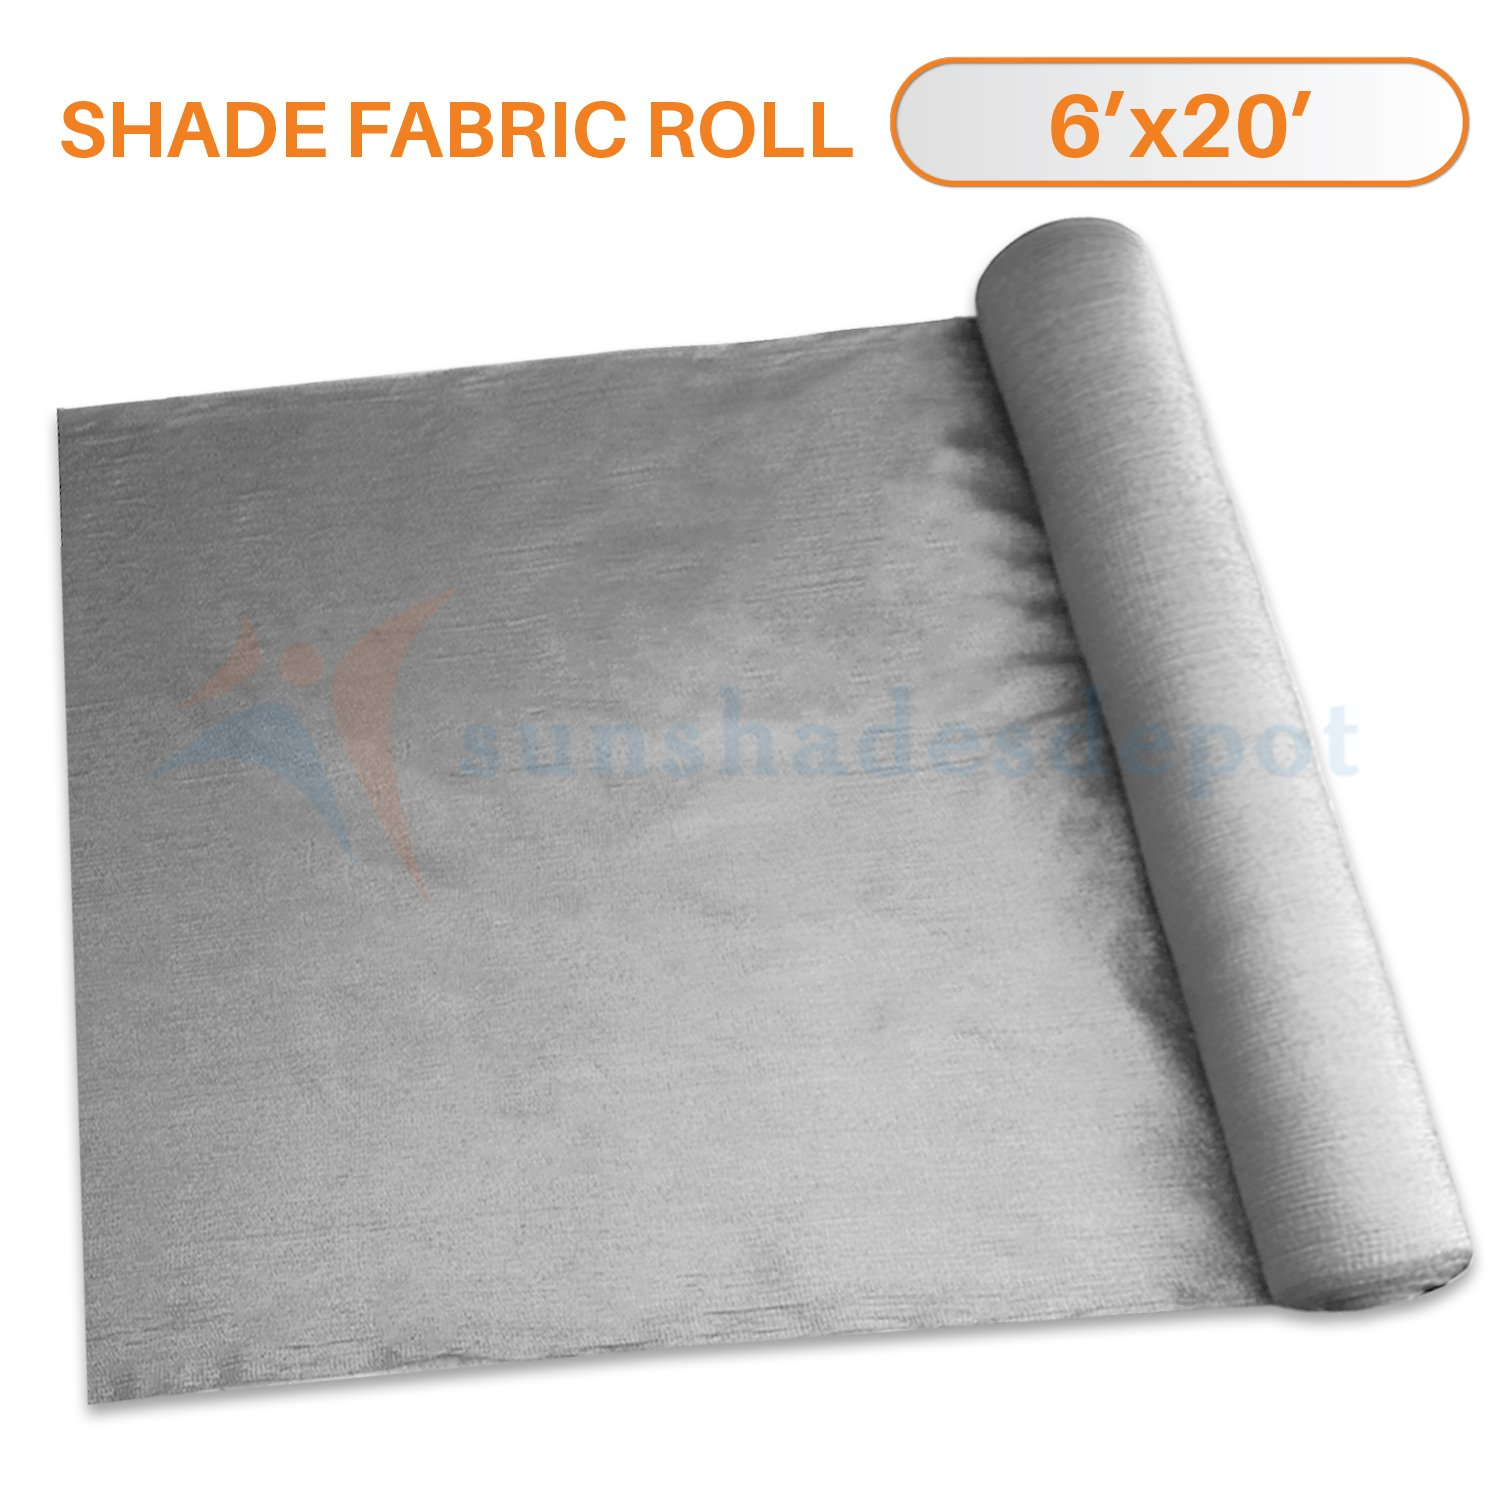 Sunshades Depot 6' x 20' Shade Cloth 180 GSM HDPE Light Grey Fabric Roll Up to 95% Blockage UV Resistant Mesh Net